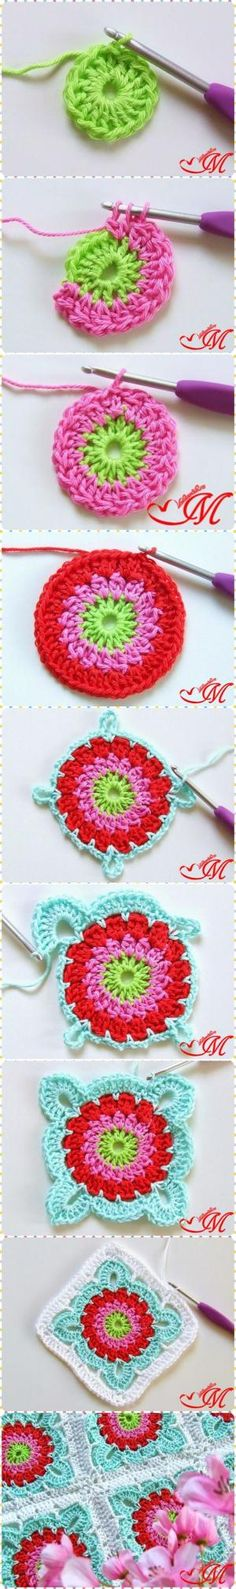 How to Crochet Pretty Granny Square Blanket with Free Pattern by latisha